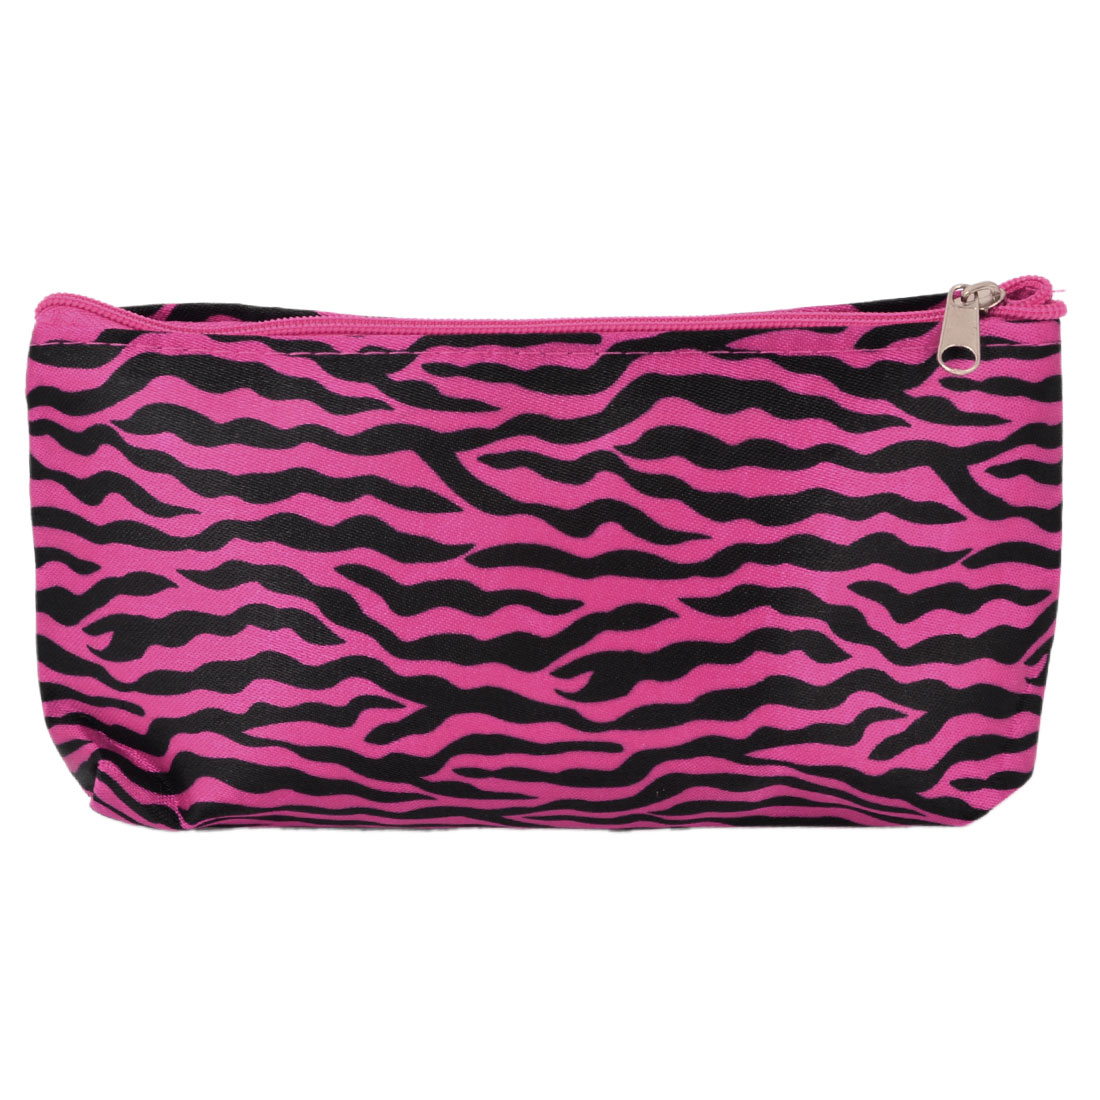 Fuchsia Black Zebra Style Zippered Cosmetic Makeup Bag for Women